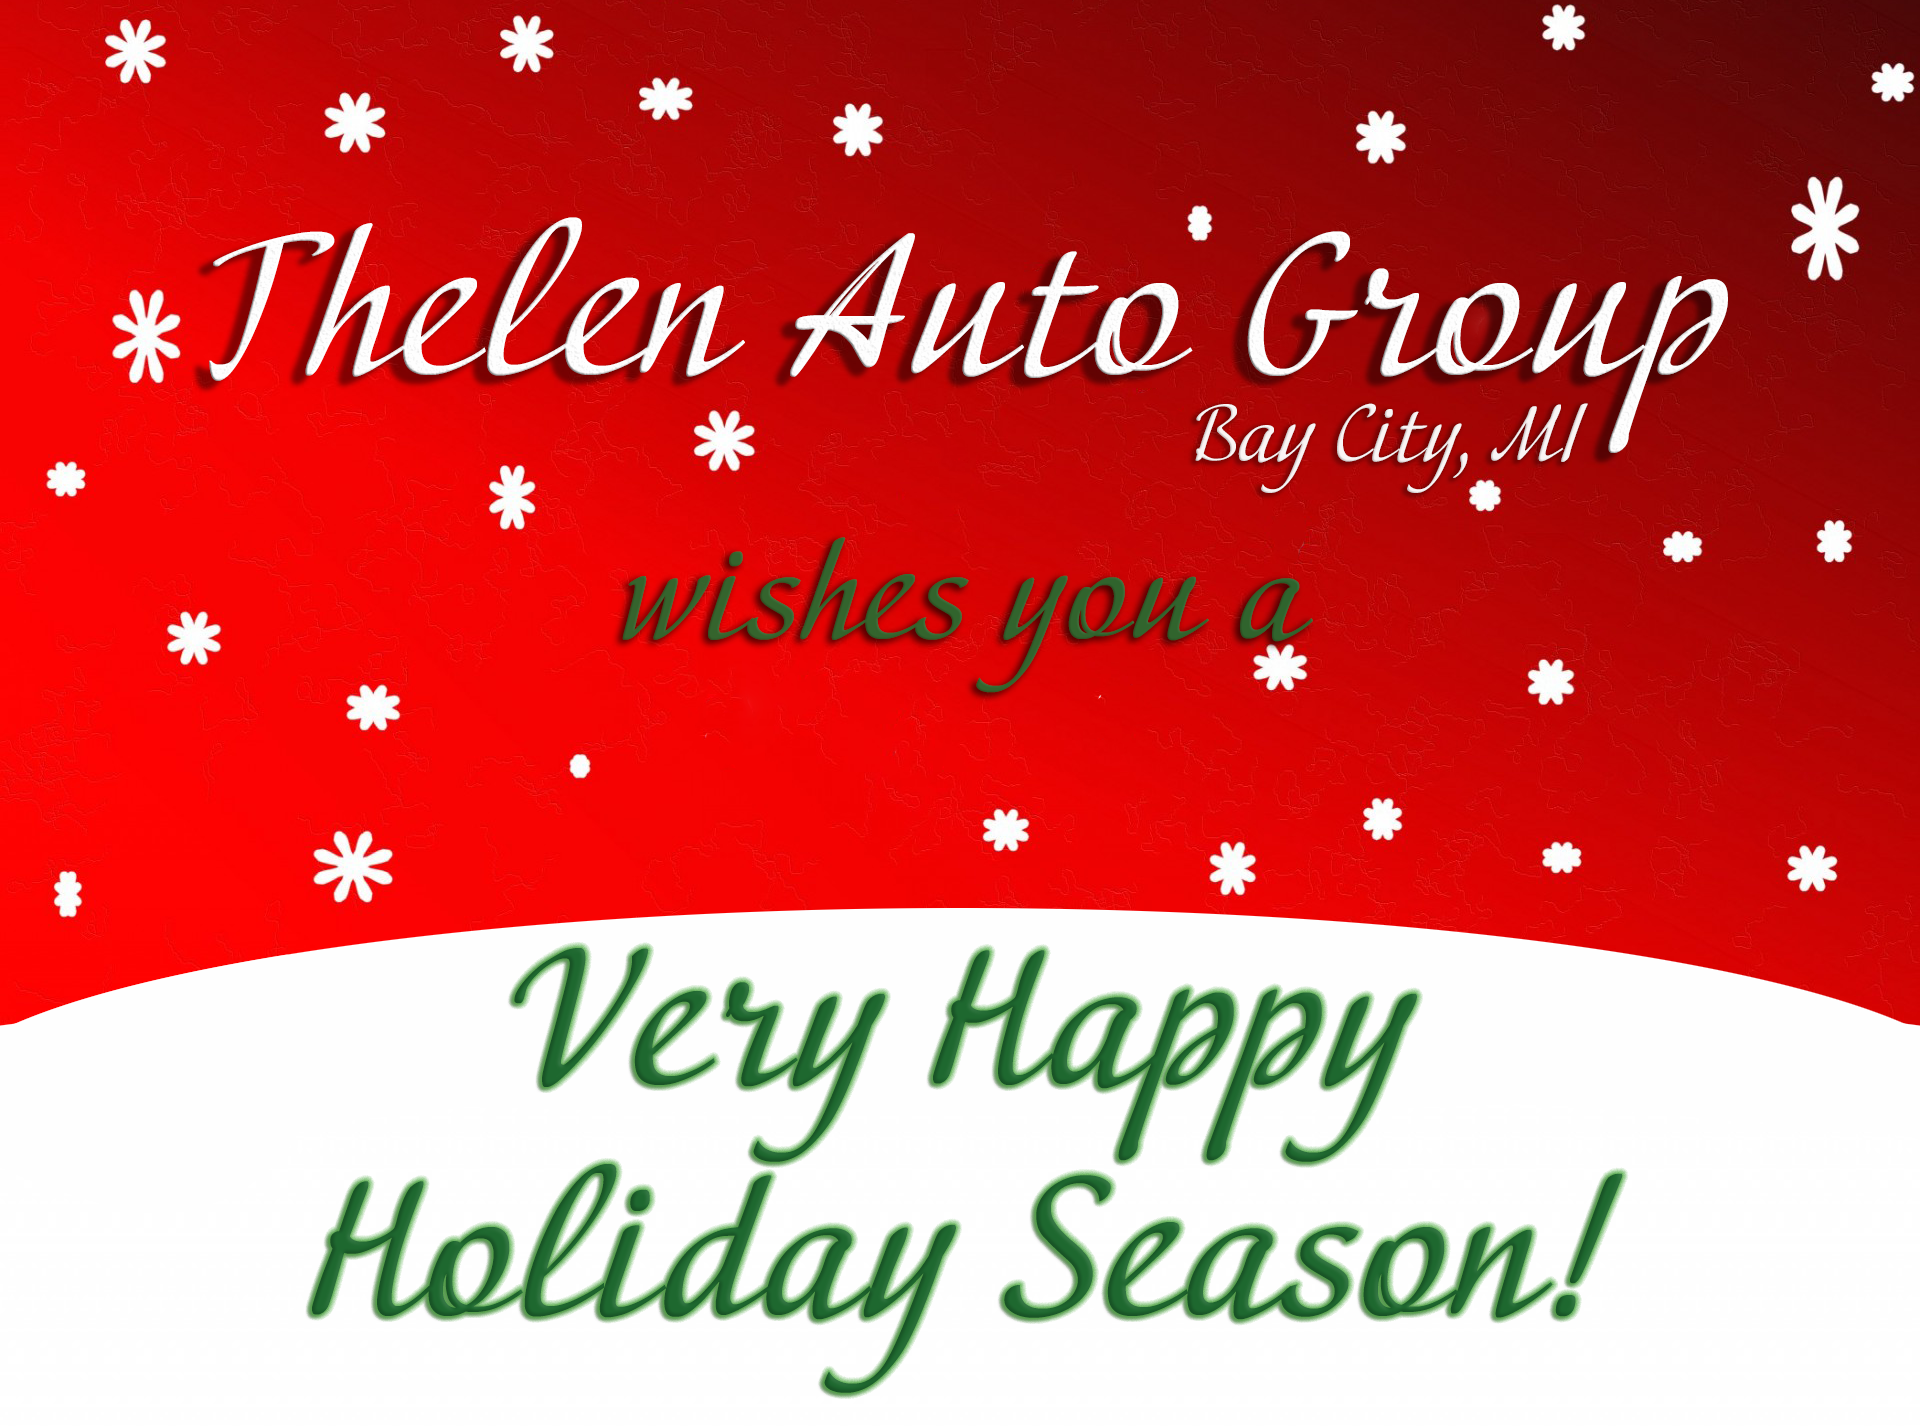 Happy Holidays from Thelen Audi in Bay City, Michigan